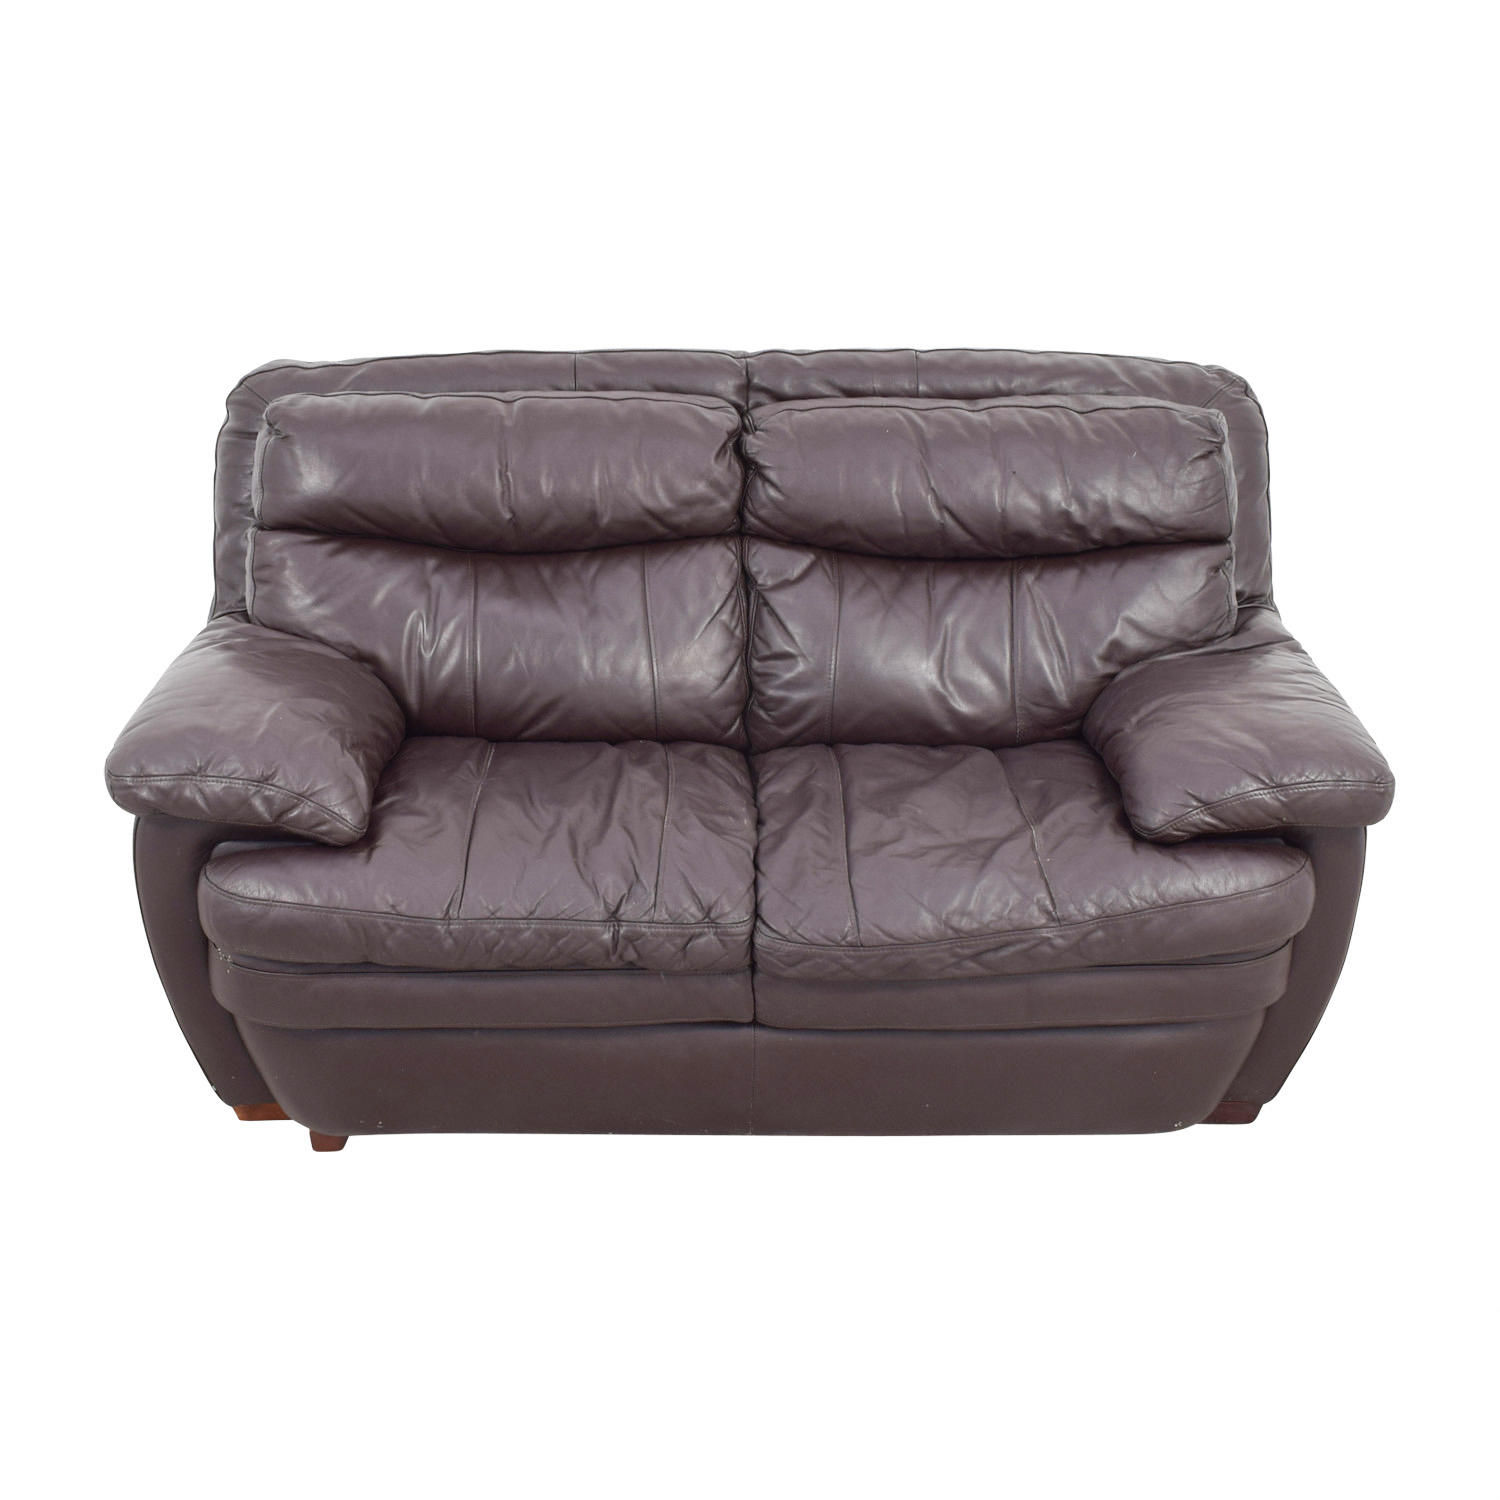 Bobs Furniture Brown Leather Loveseat / Sofas